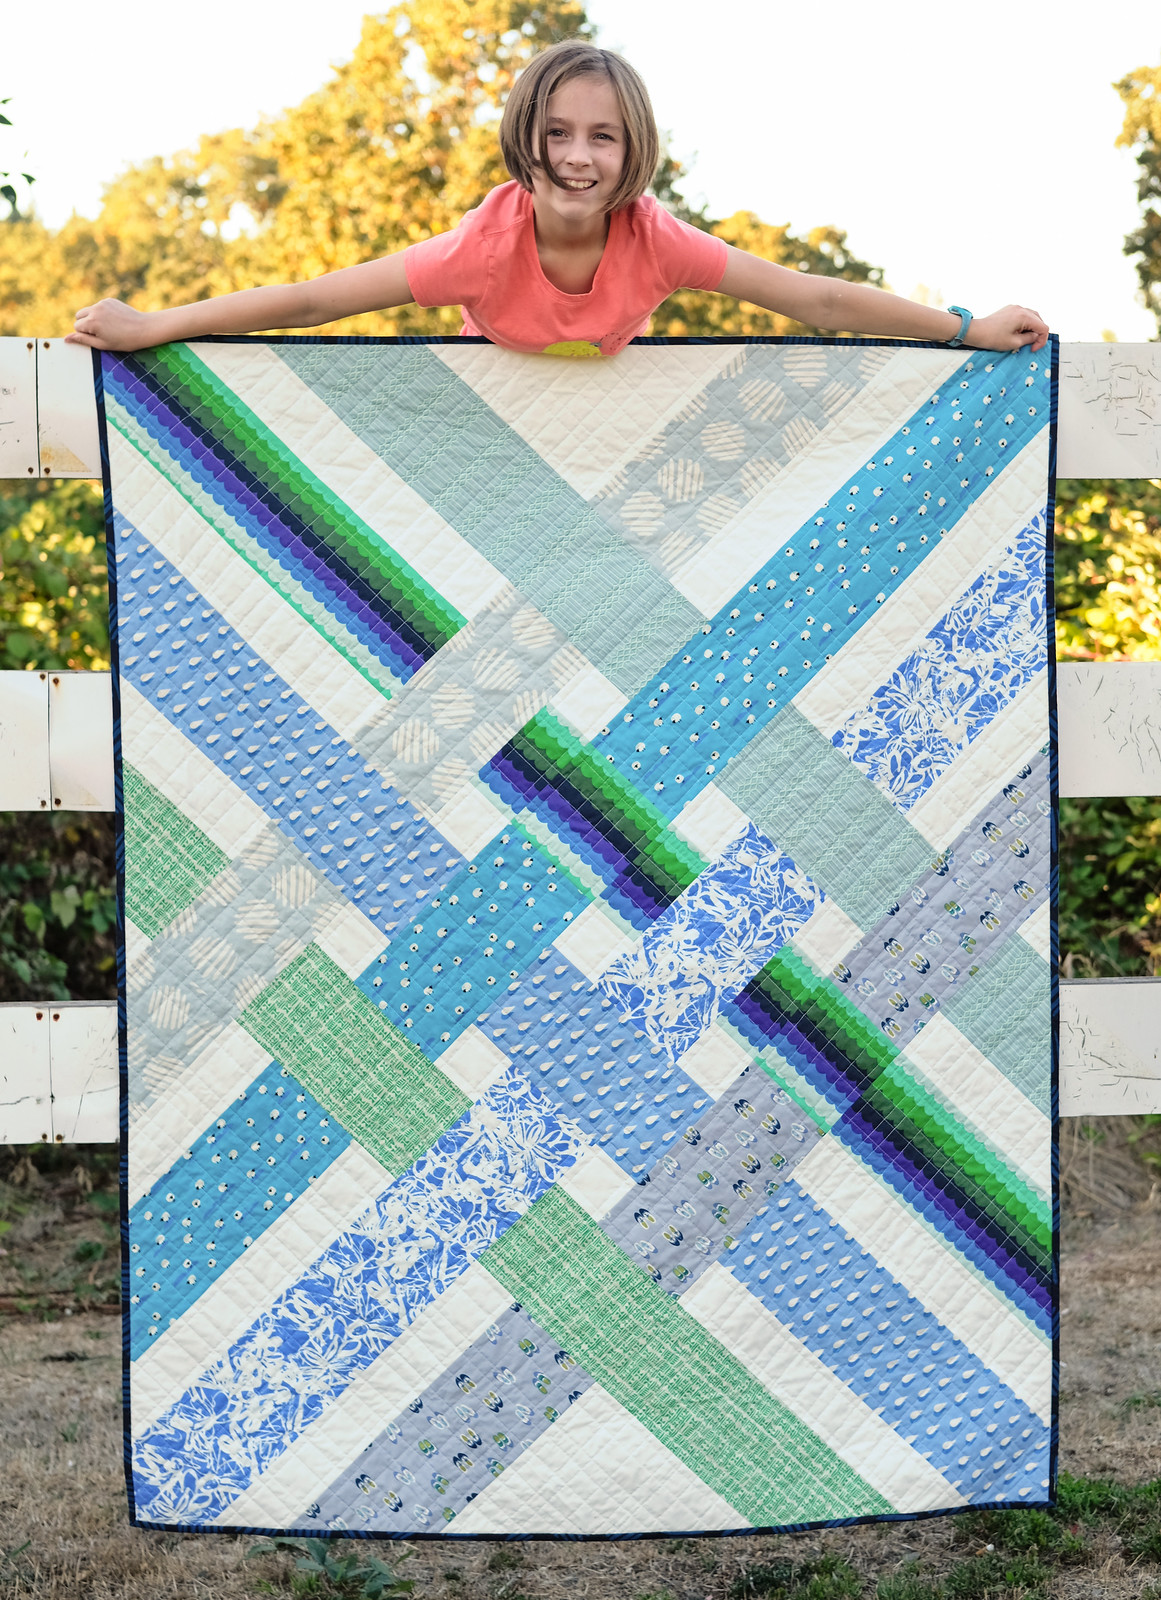 The Libby Quilt in Panorama